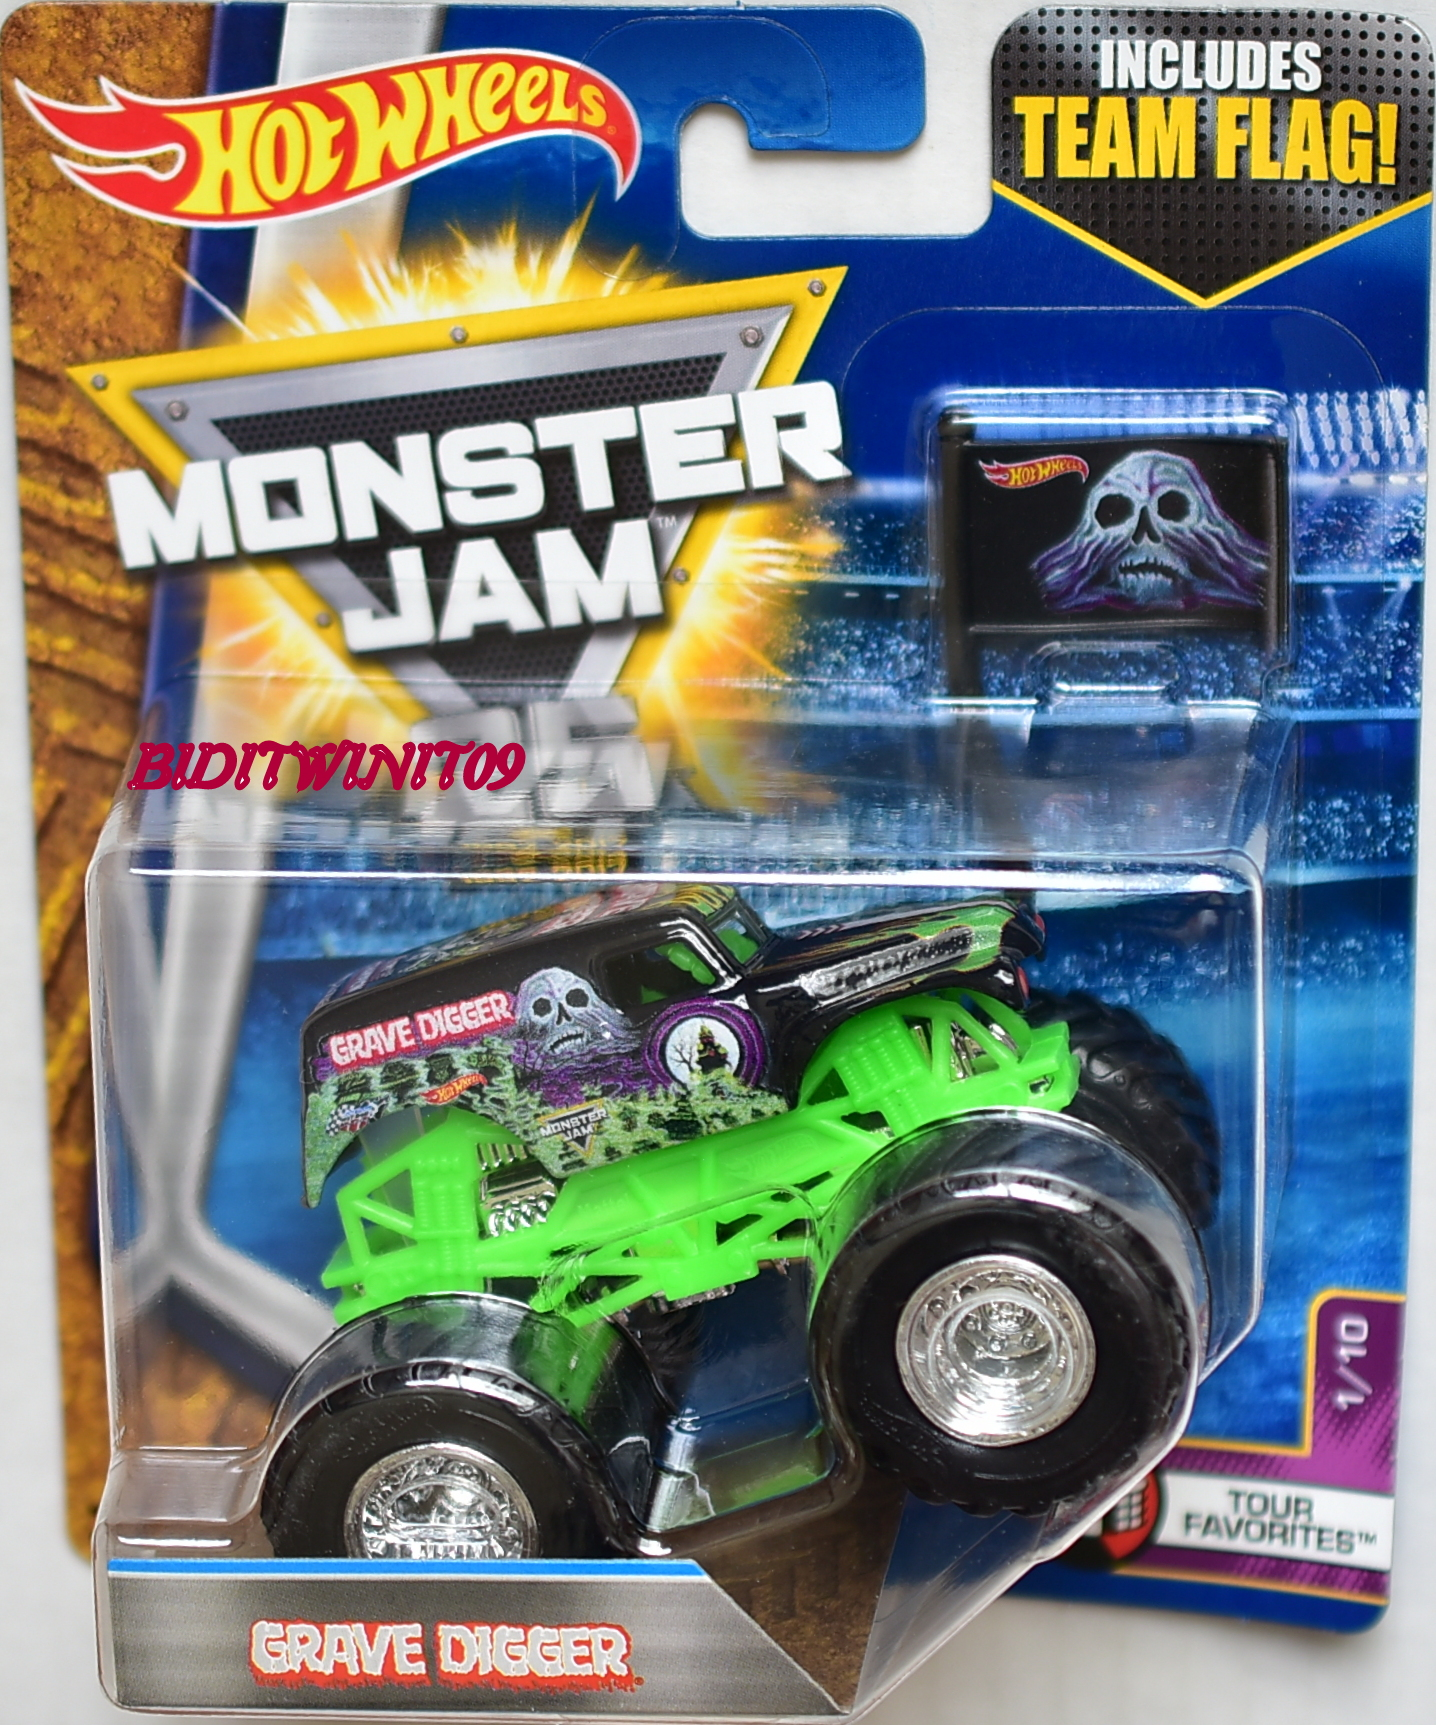 HOT WHEELS 2017 MONSTER JAM INCLUDES TEAM FLAG GRAVE DIGGER - TOUR FAVORITES